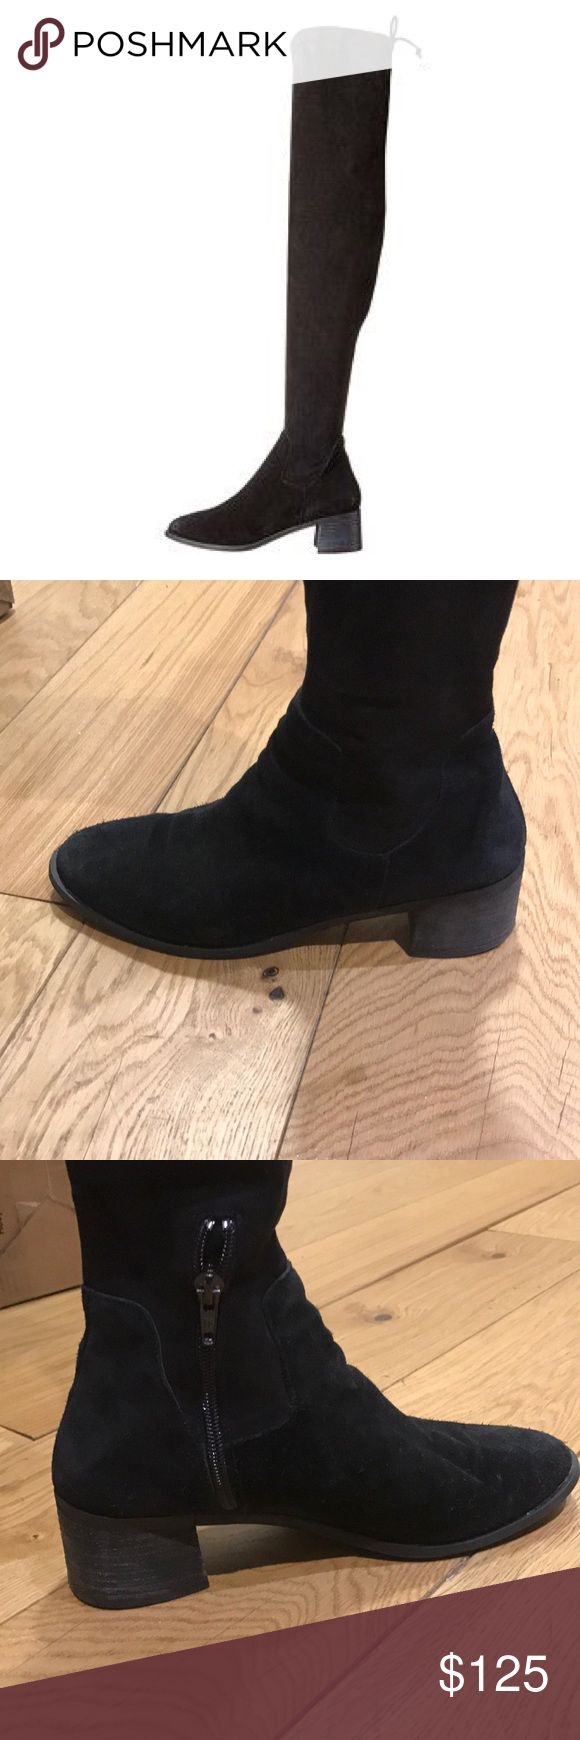 Free People Over Knee Boots Size 8. 1 year old - coast to coast Free People tall vegan suede boots. Looks great with leggings or jeans . Slight heel. Drawstring tie behind knee. Free People Shoes Over the Knee Boots